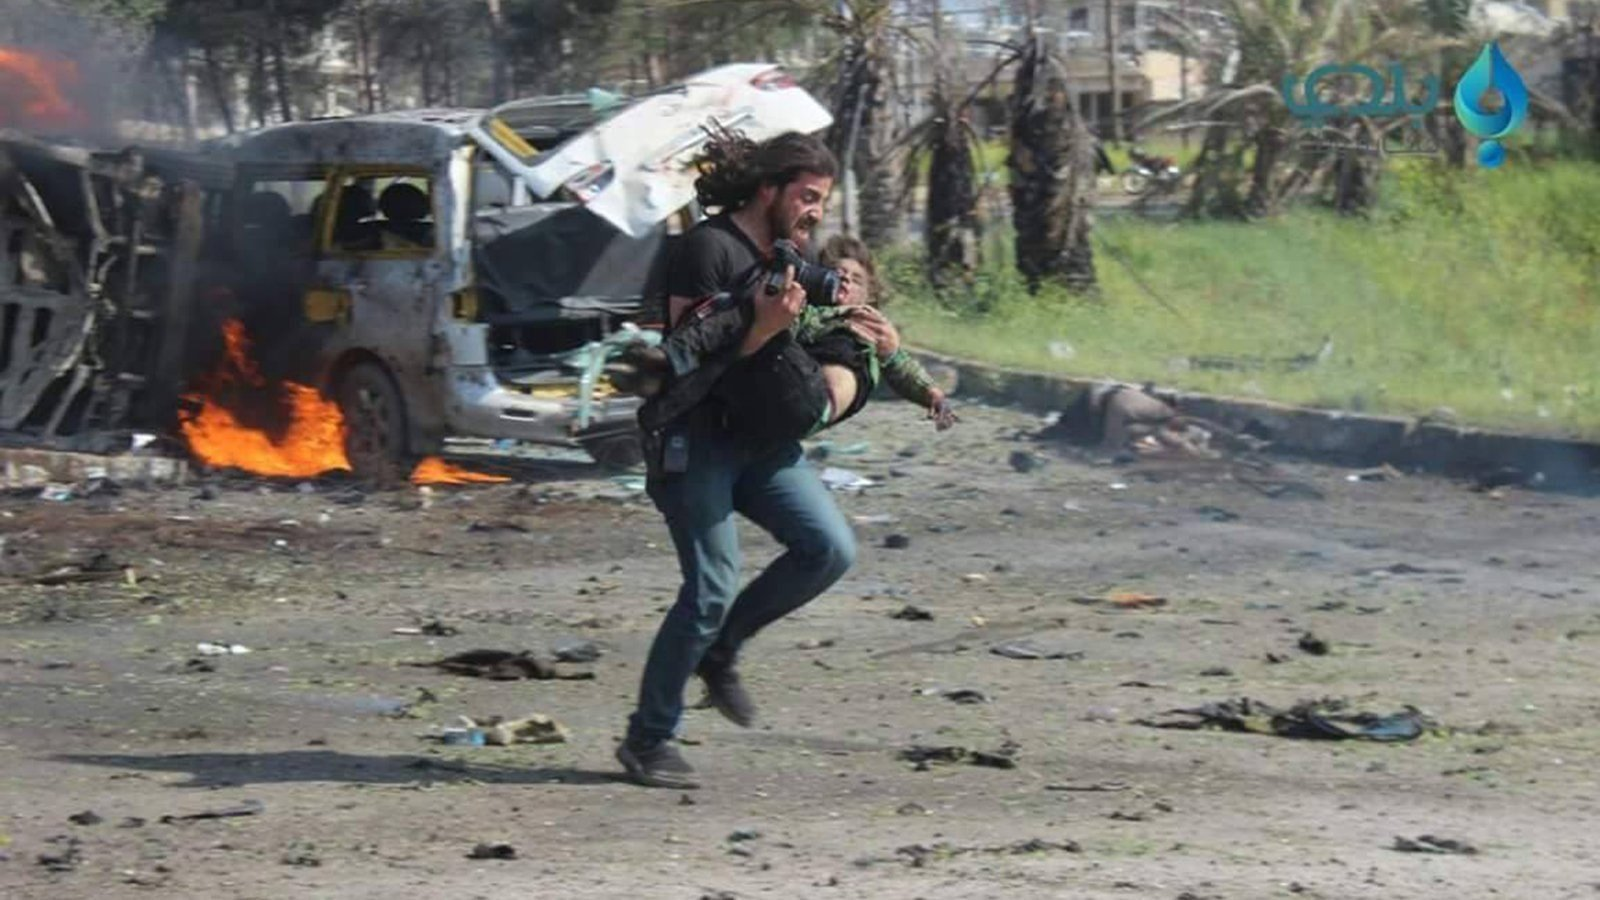 Heartbreaking: Syrian photographer drops camera to save child after bomb blast